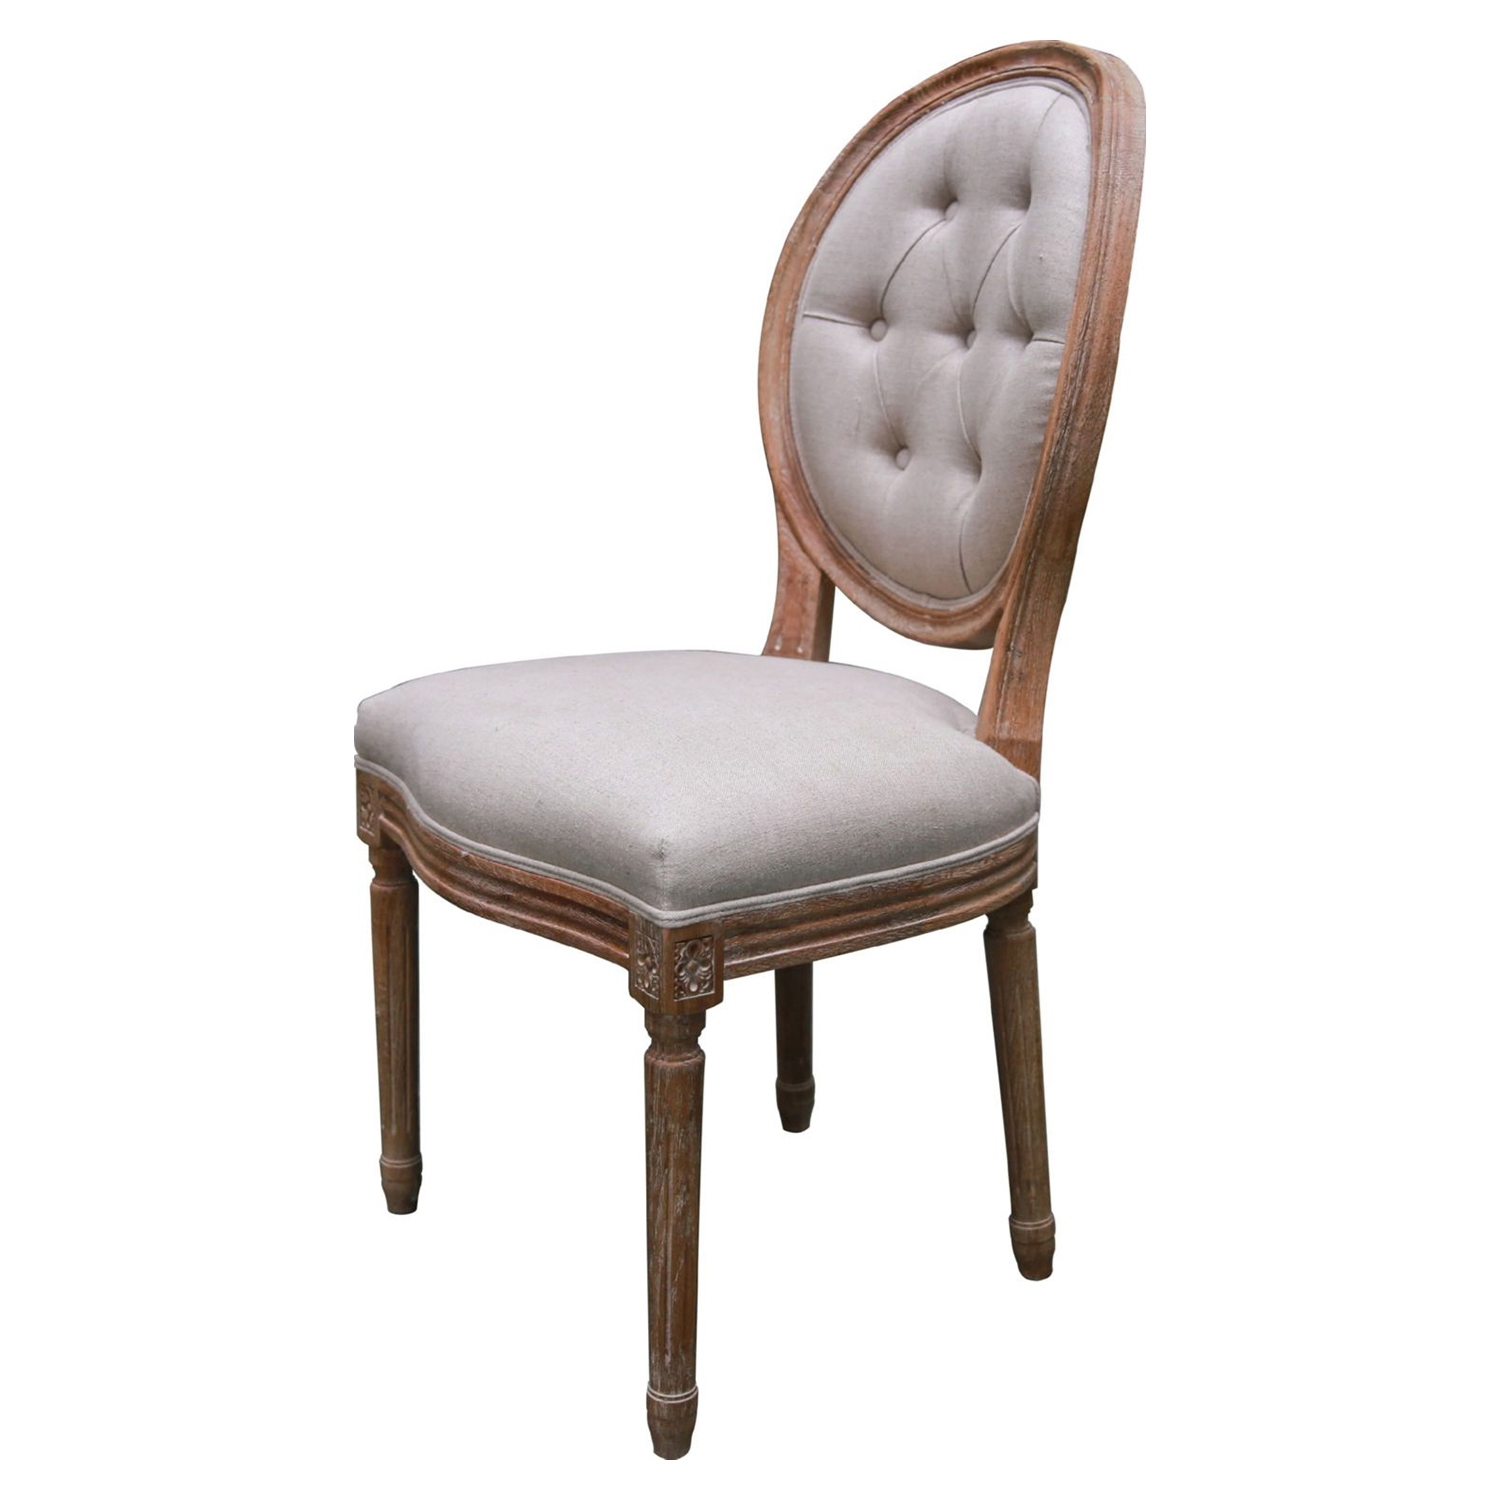 Madeline Side Chair - Tufted, Light Gray (Set of 2) - MOES-SX-1013-29